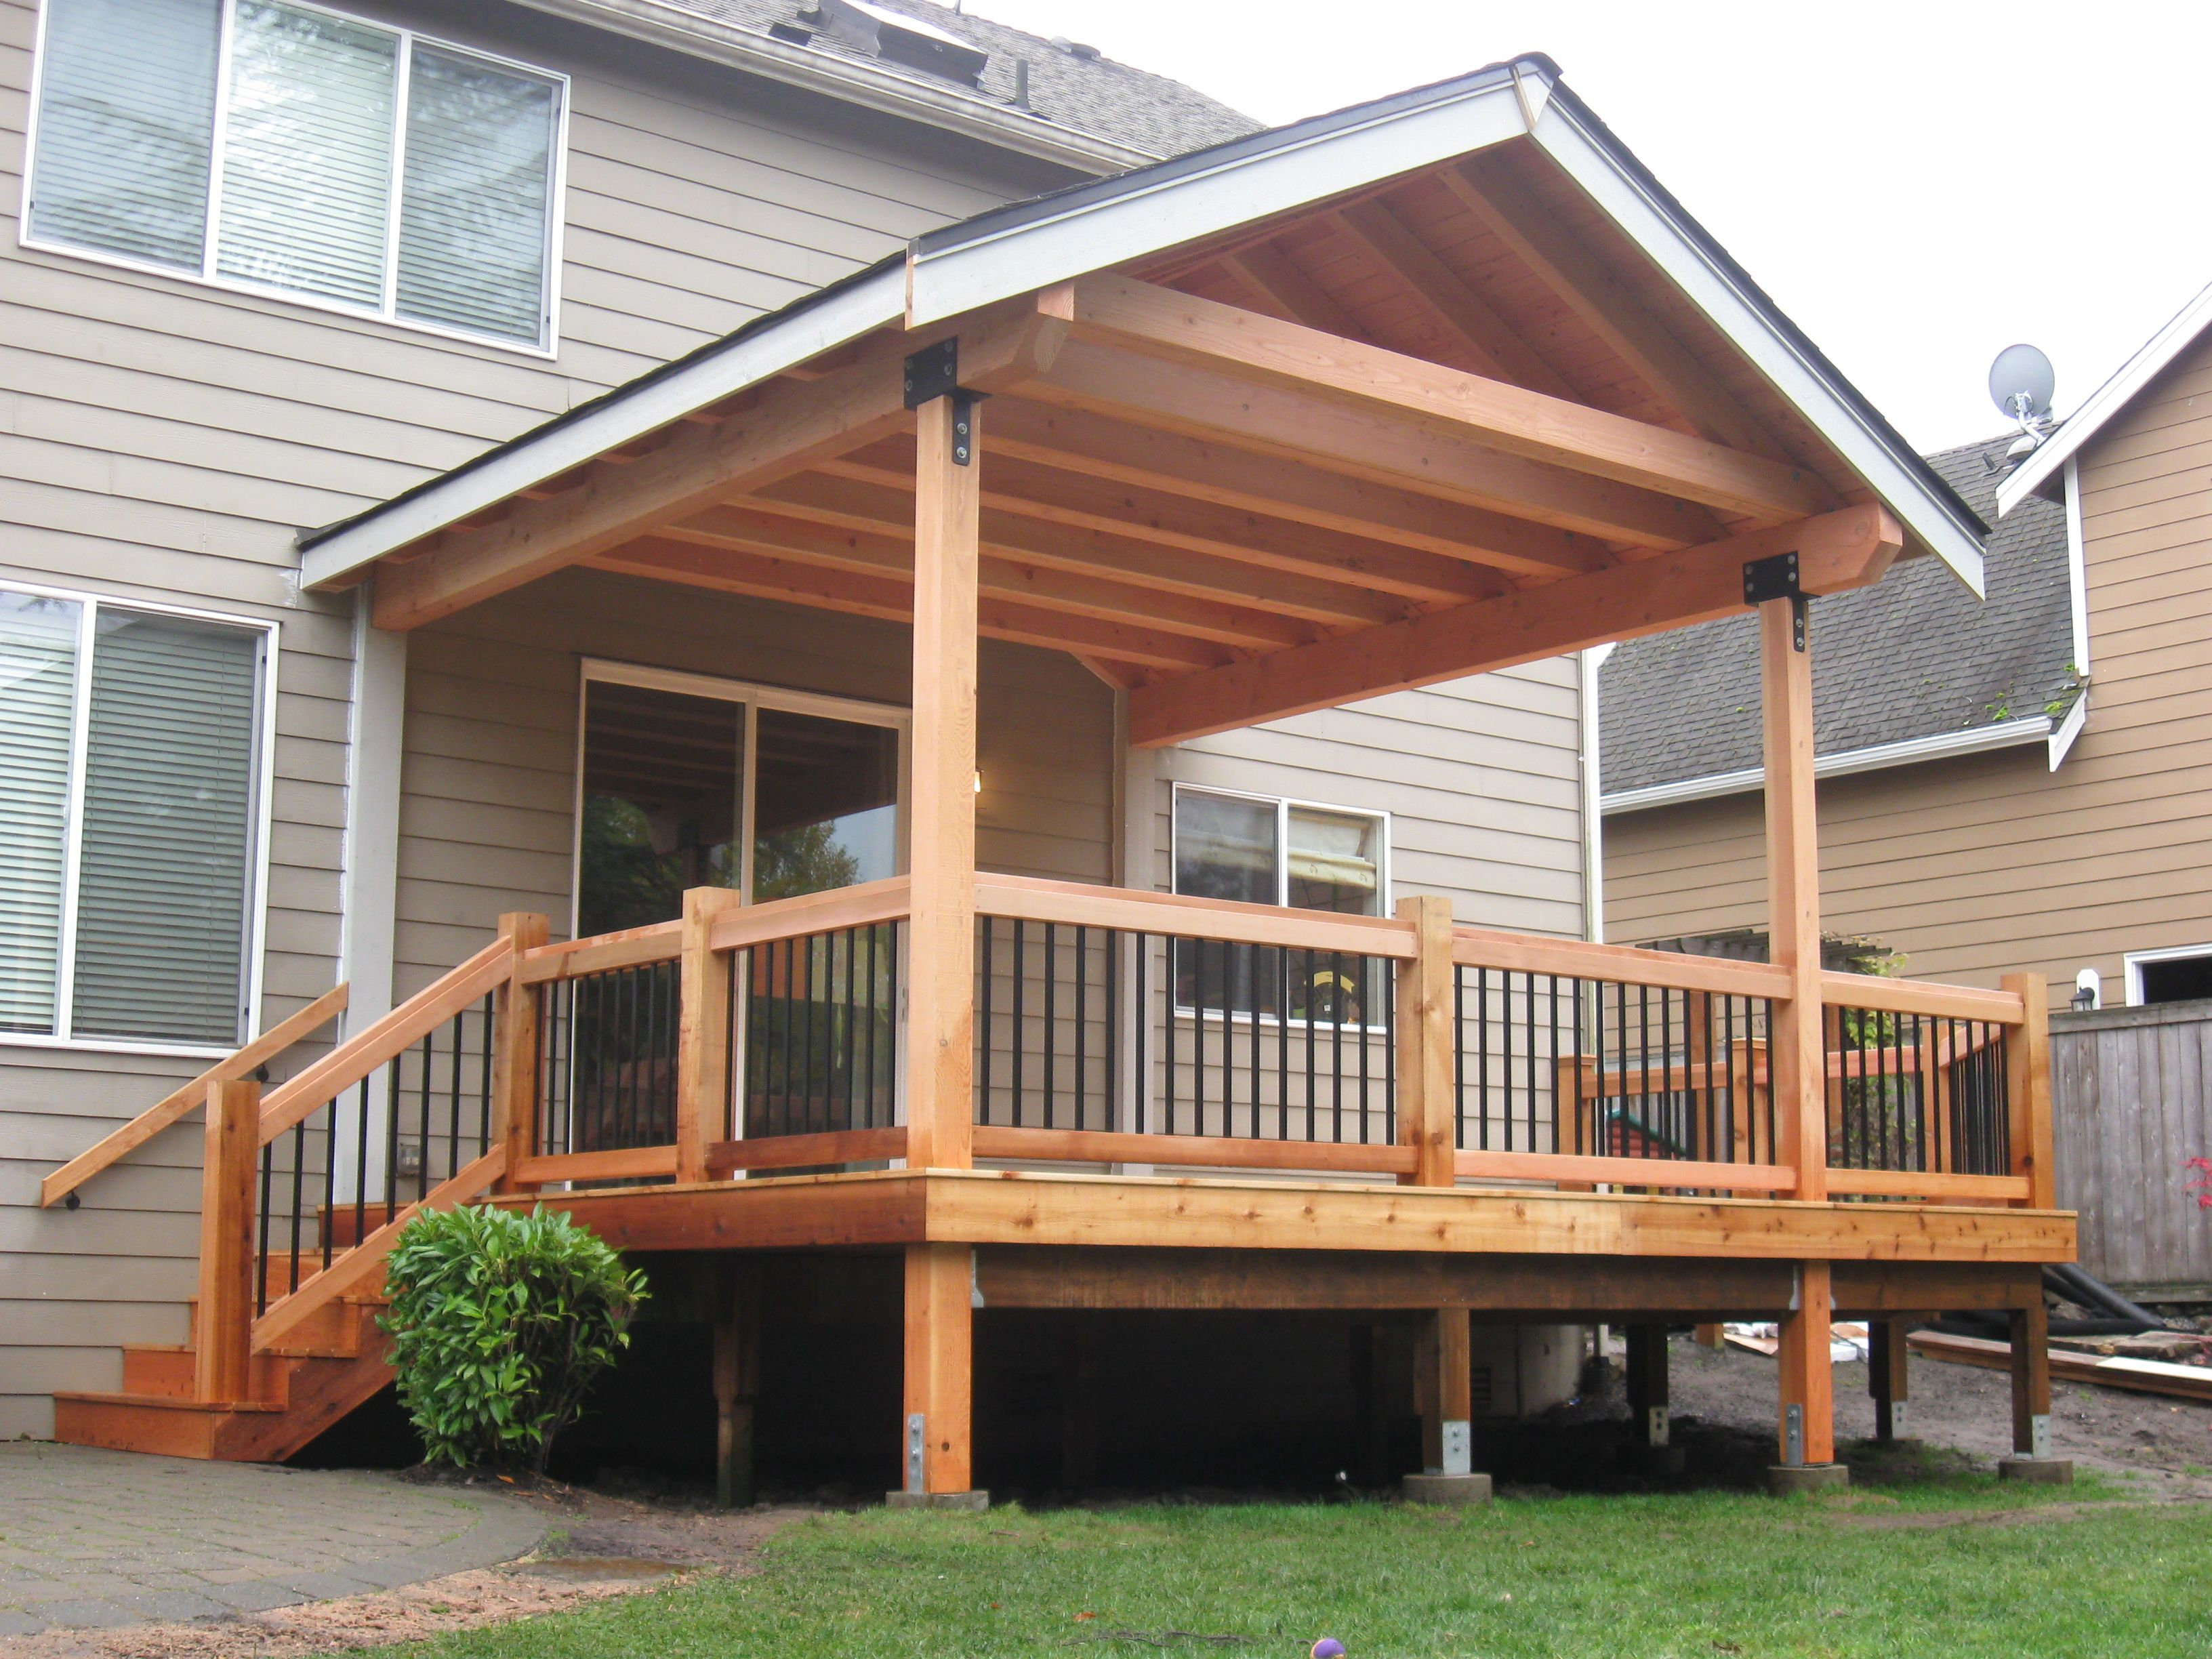 Roof Design Ideas: Fir Timber Framed Roof Cover Over Cedar Deck. Built By